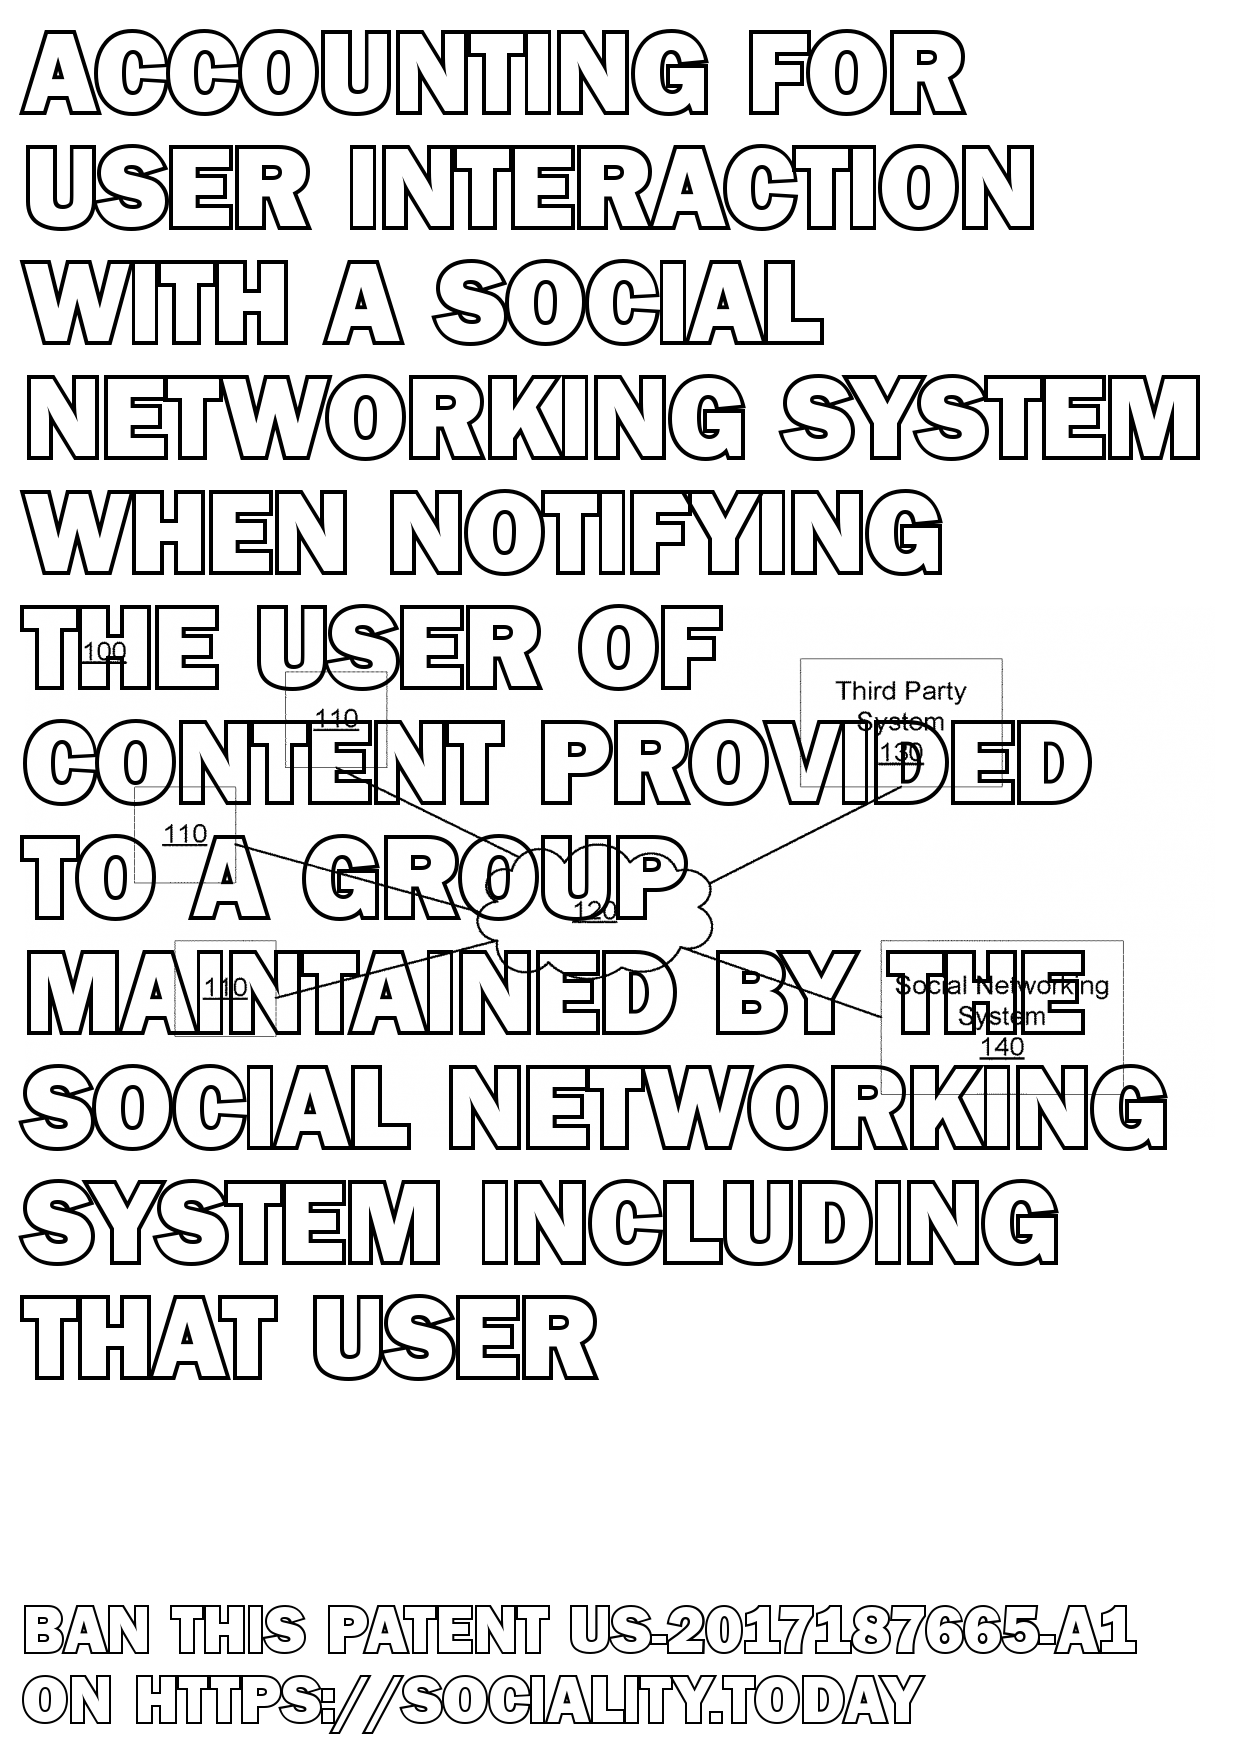 Accounting for user interaction with a social networking system when notifying the user of content provided to a group maintained by the social networking system including that user  - US-2017187665-A1